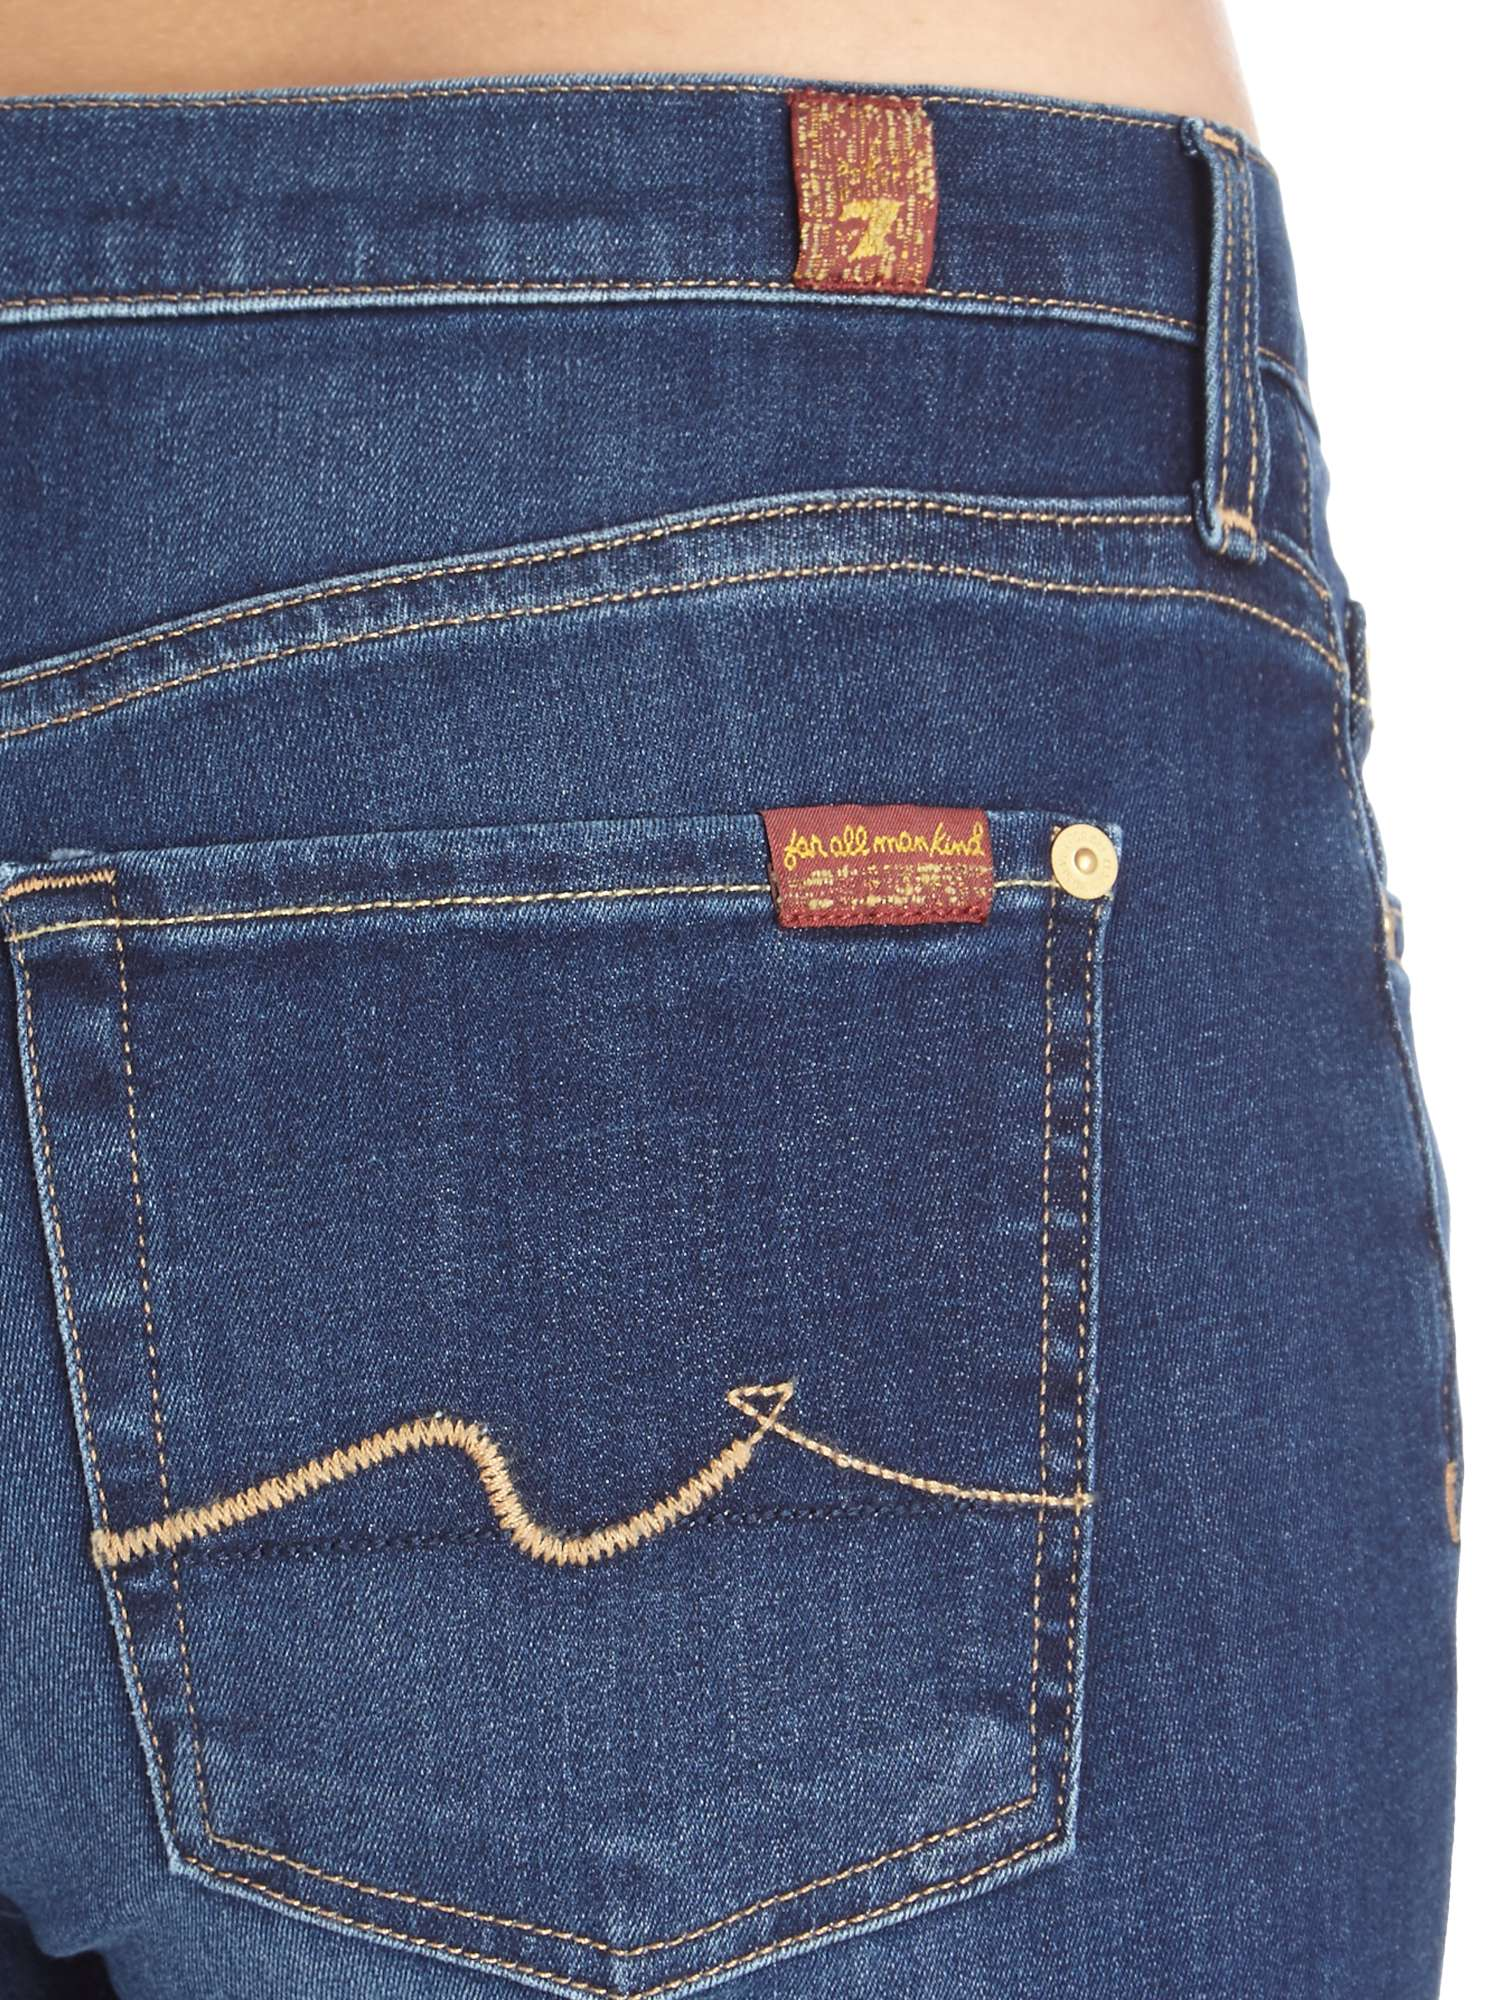 Jean air Duchess All B For The Mankind Skinny 7 7PxAqP